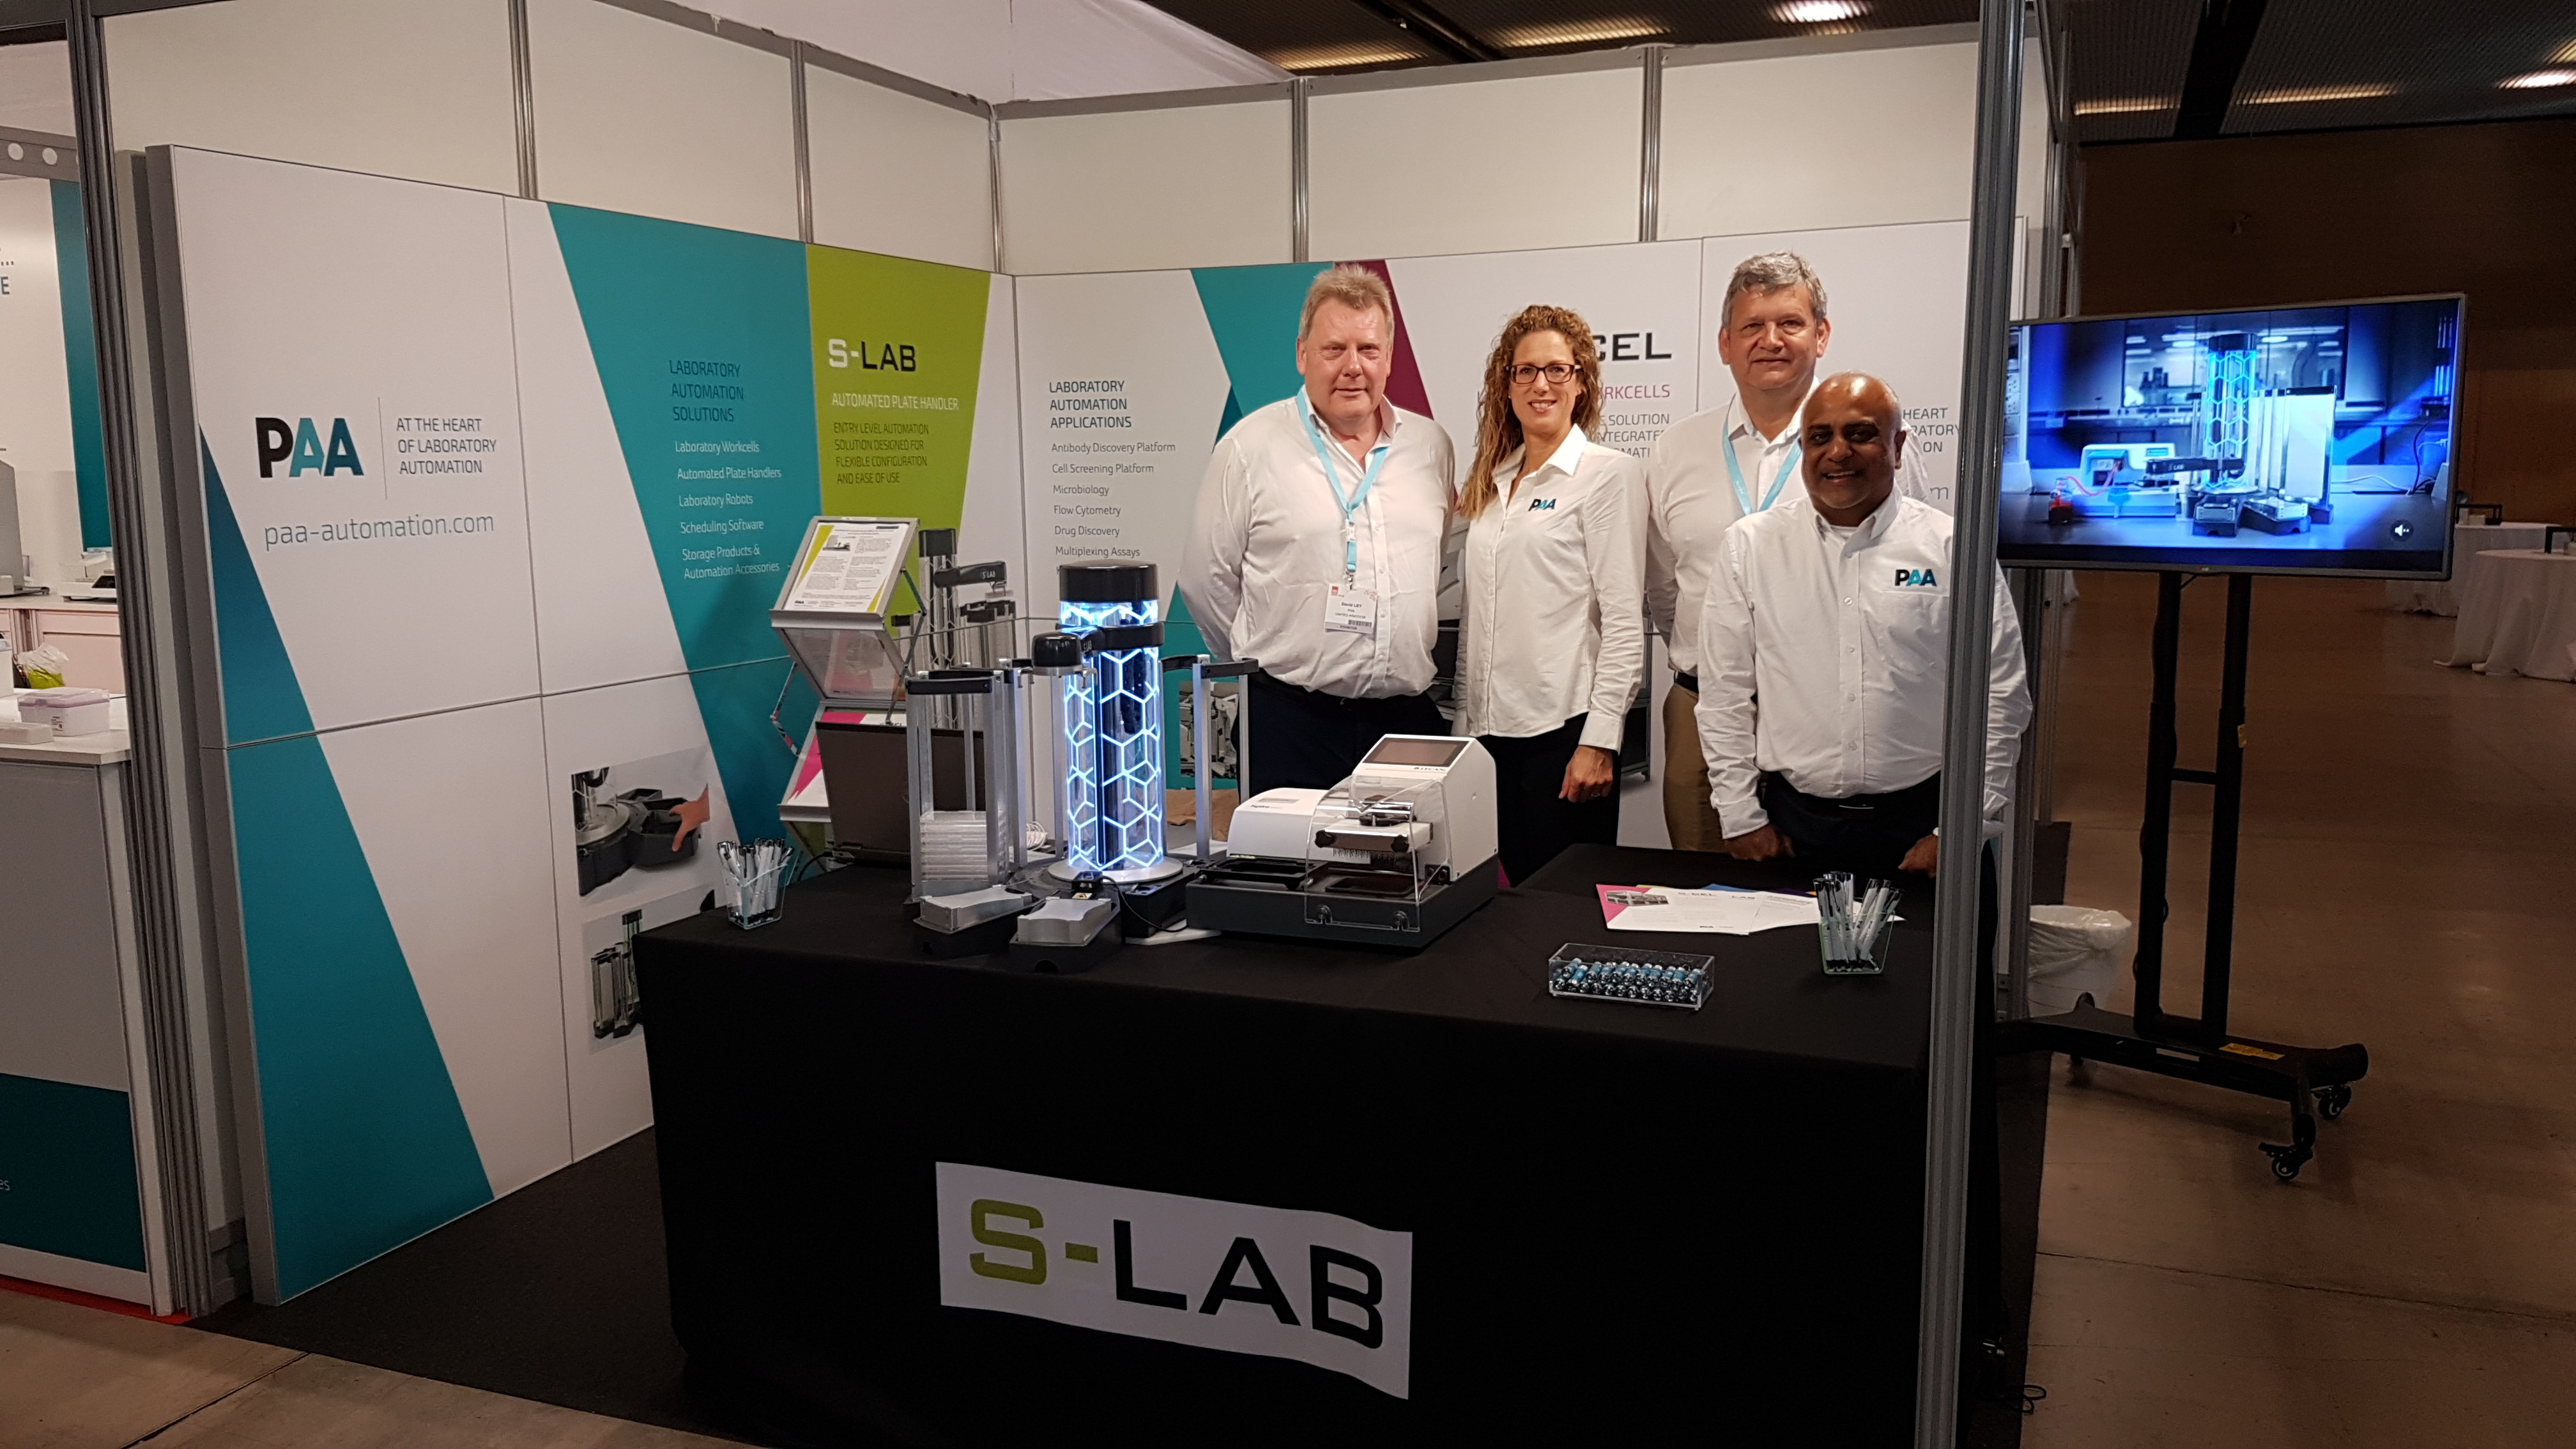 PAA booth at SLAS Europe 2019